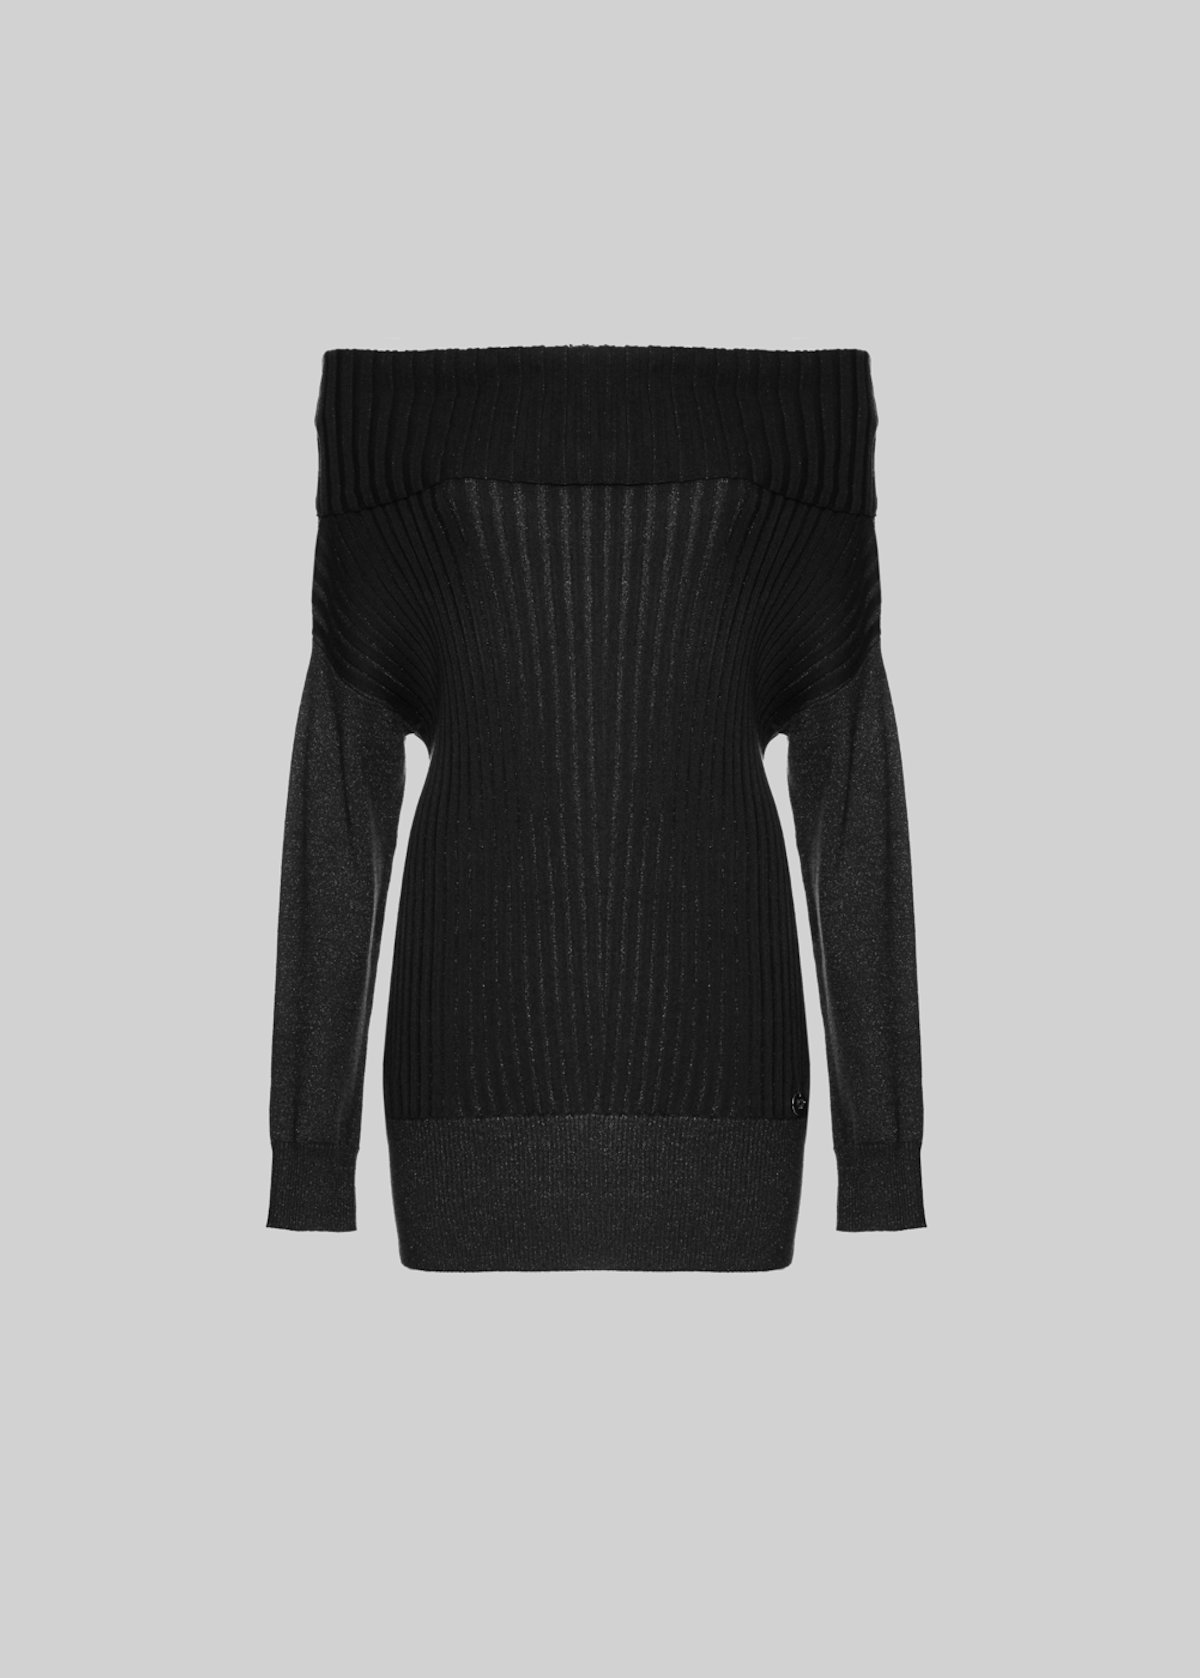 Muriel sweater with Turtleneck - Black